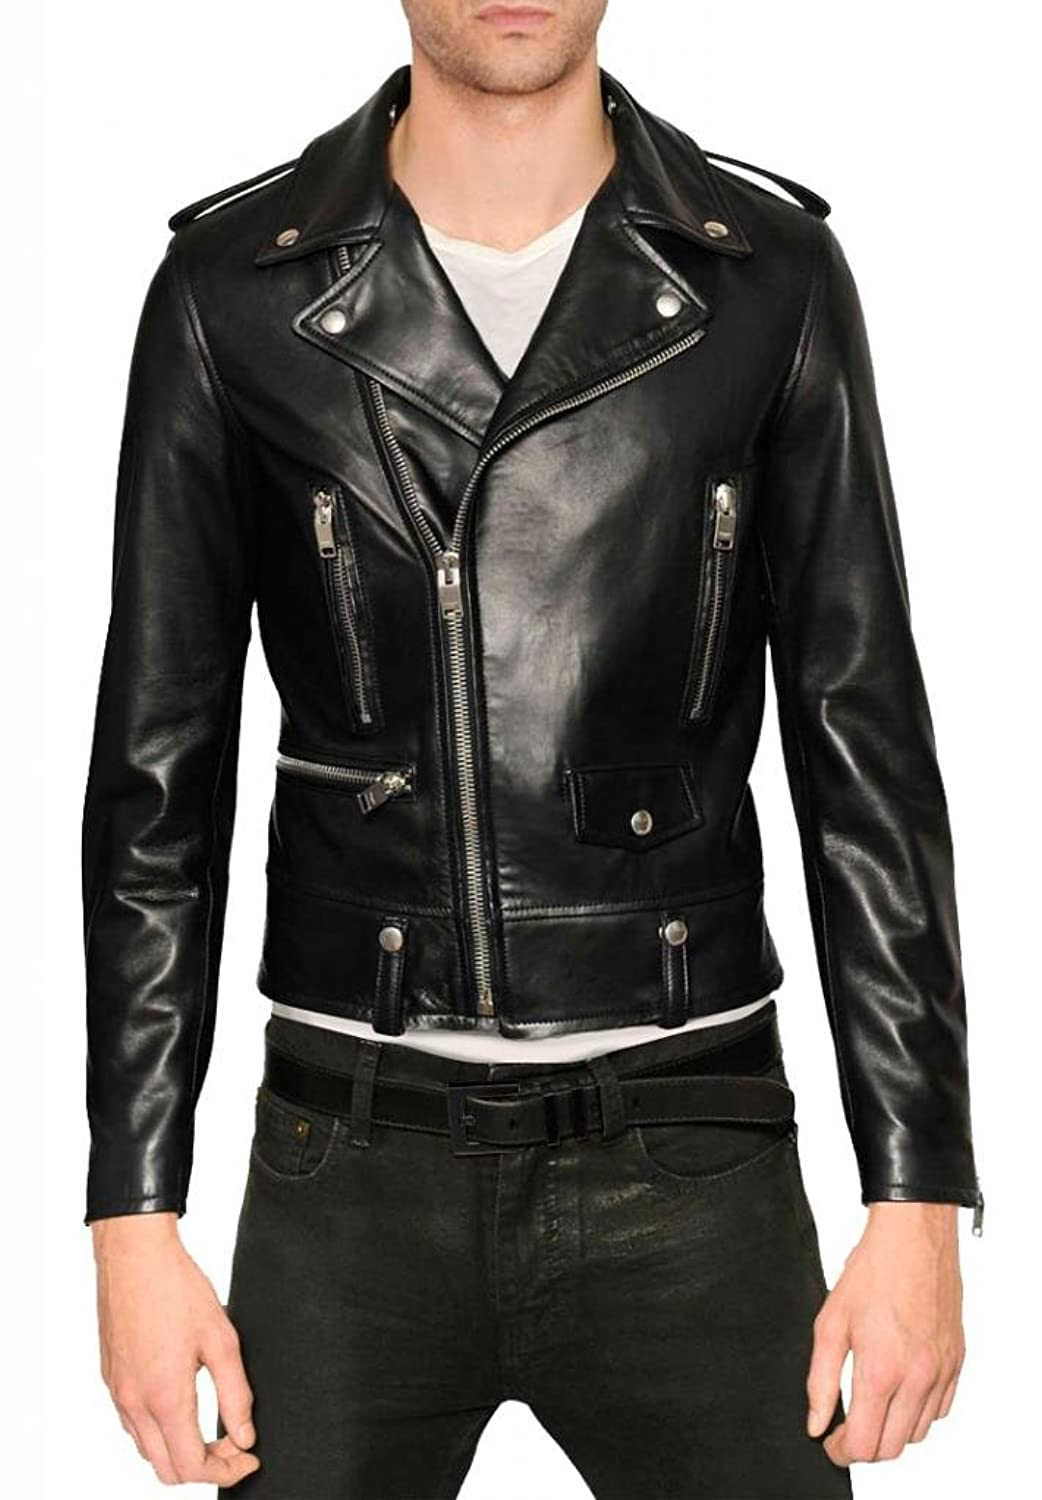 Leather Junction Men's Jacket